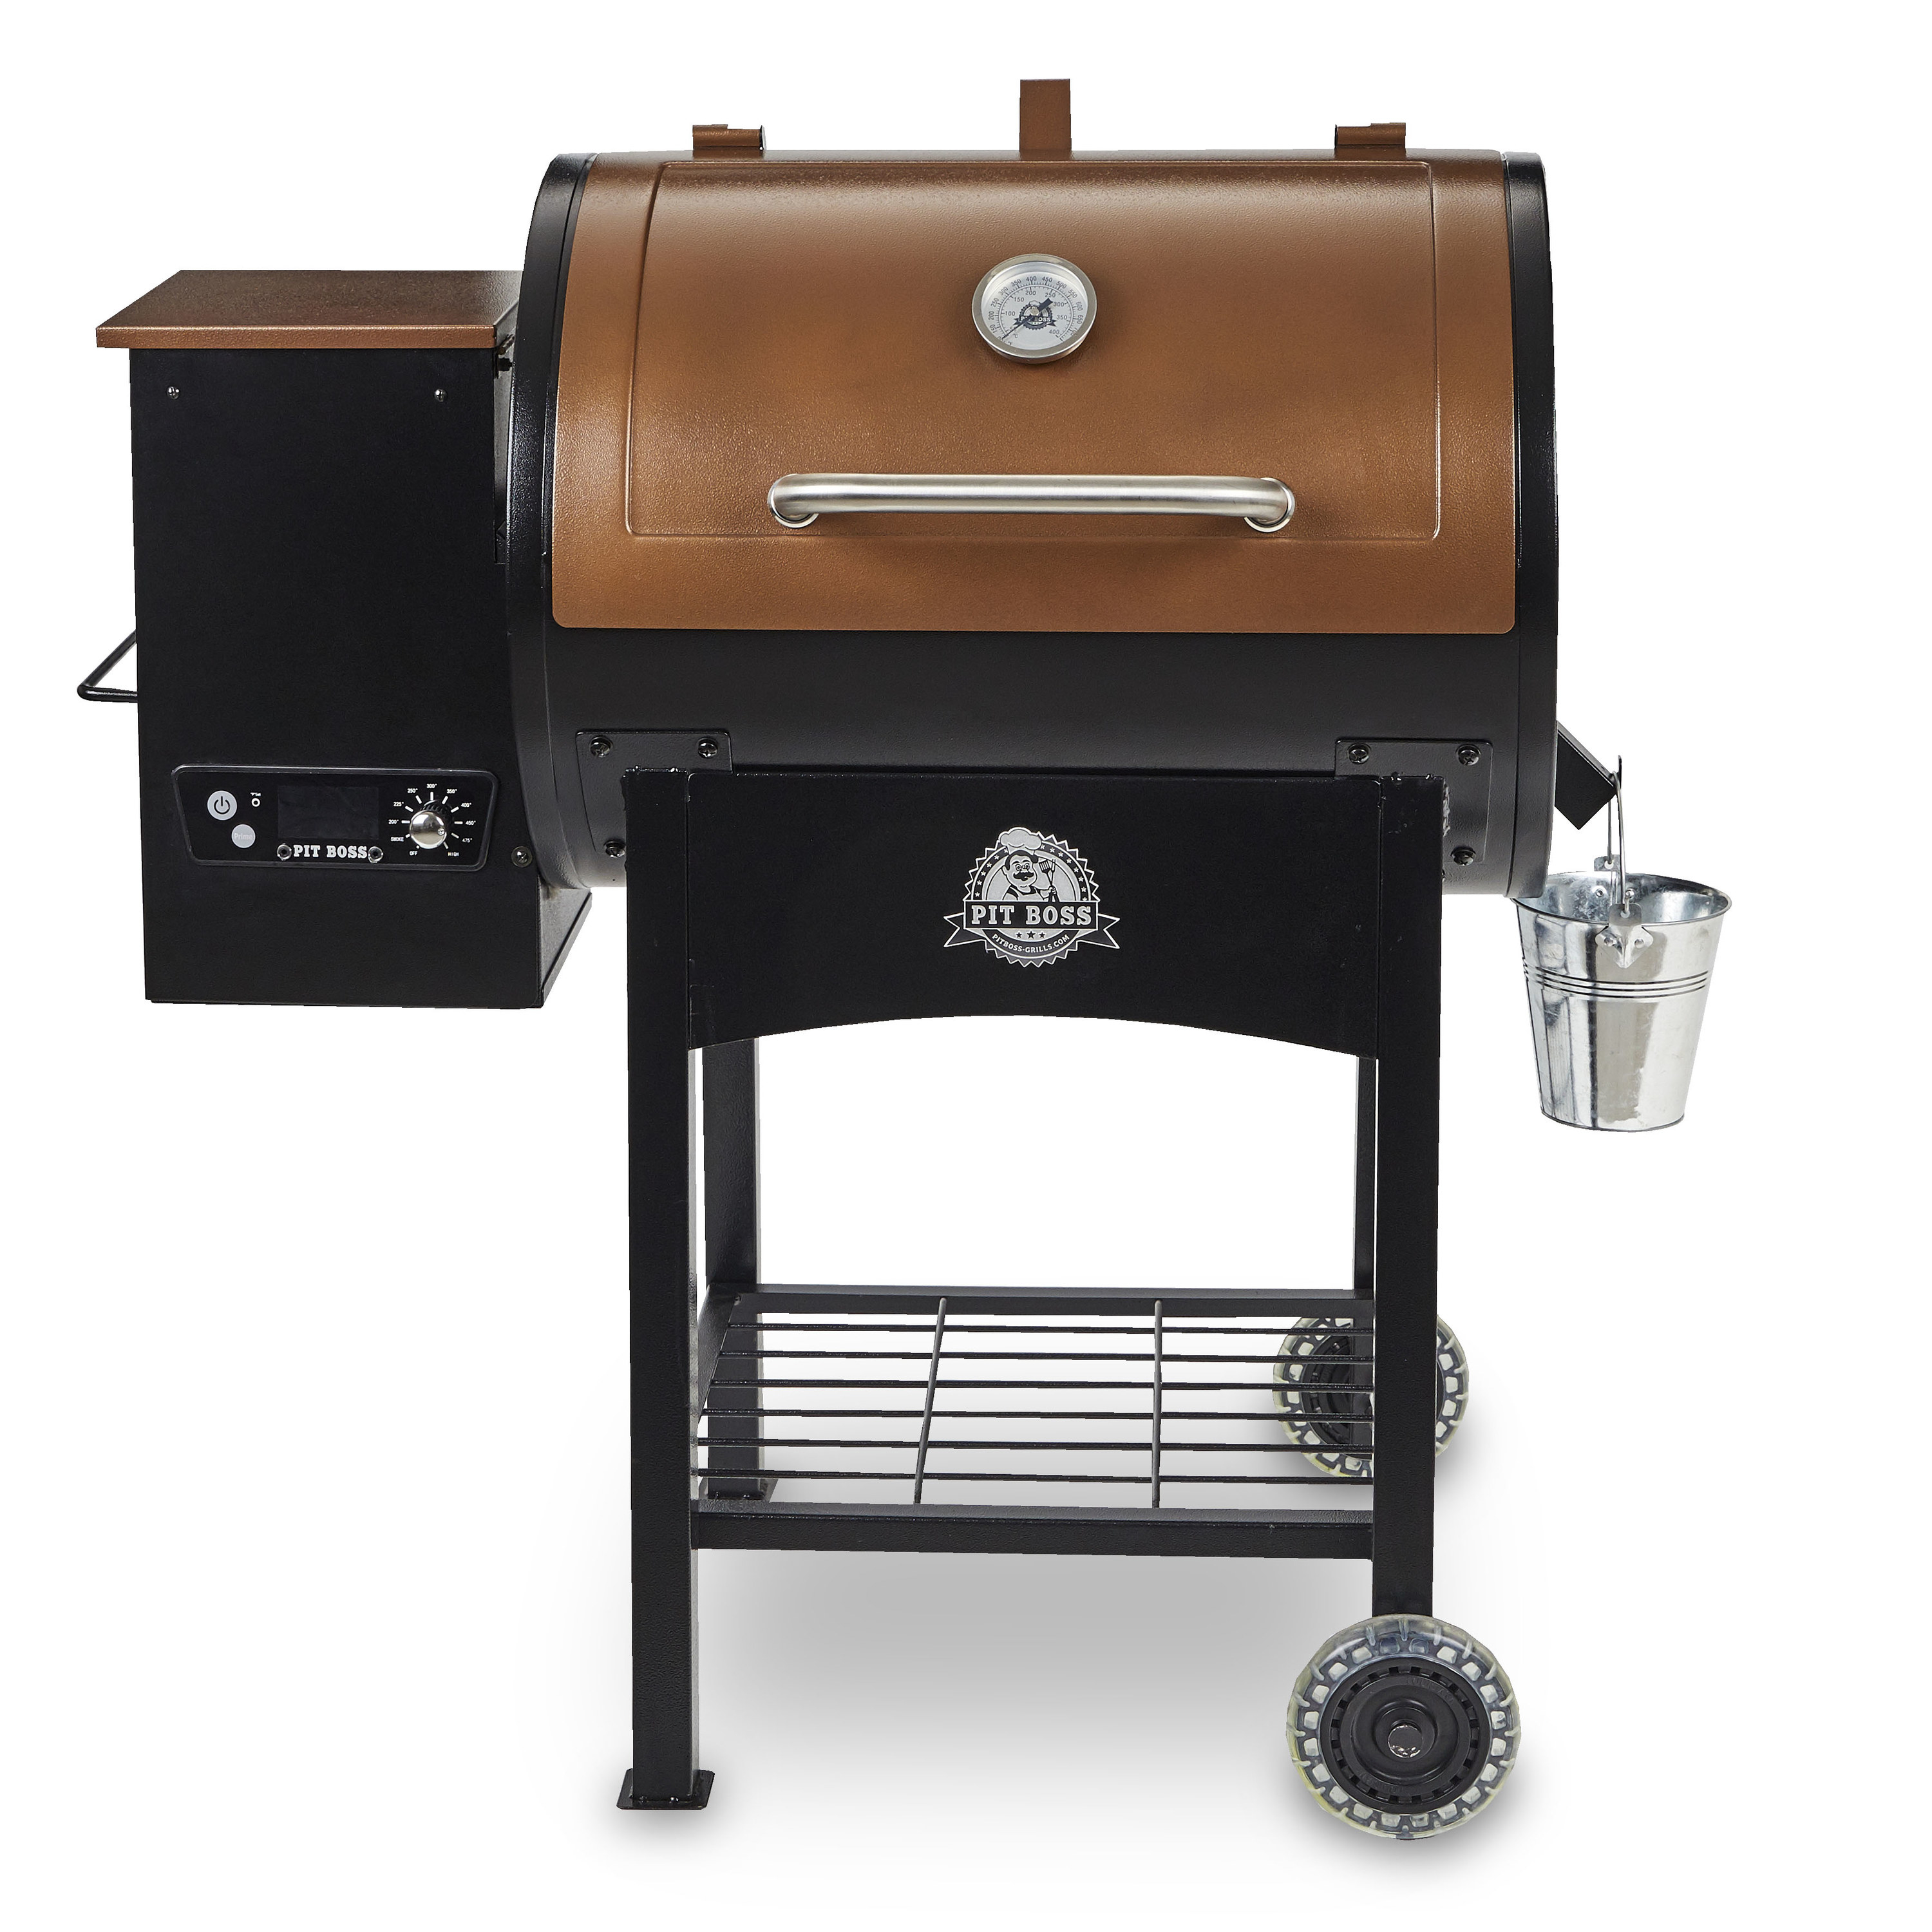 The Pit Boss Classic 700 Sq. In. Wood Fired Pellet Grill with Flame Broiler